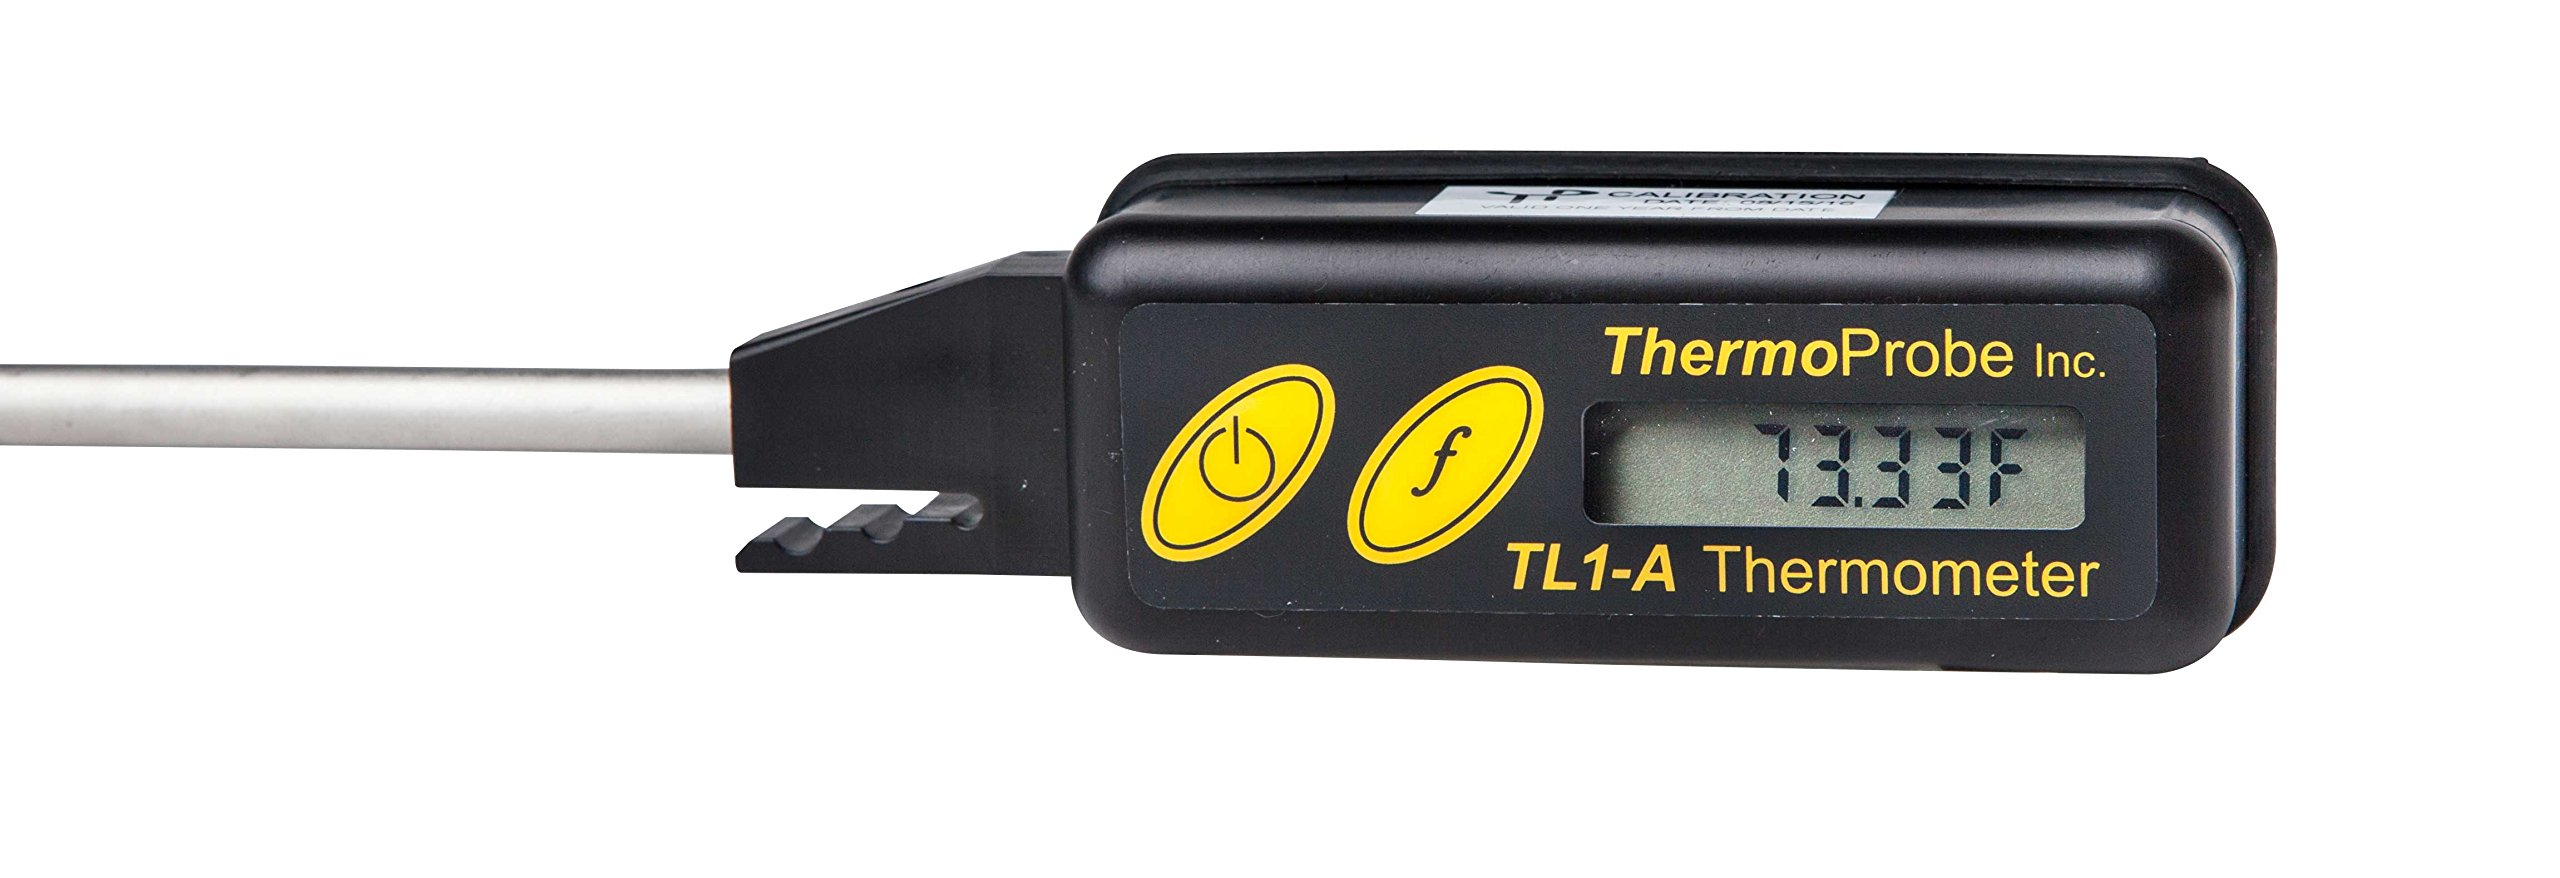 TL-1A Intrinsically Safe Digital Thermometer with 12'' Stem and NIST traceable, ISO/IEC 17025 Accredited Report of Calibration in Celsius